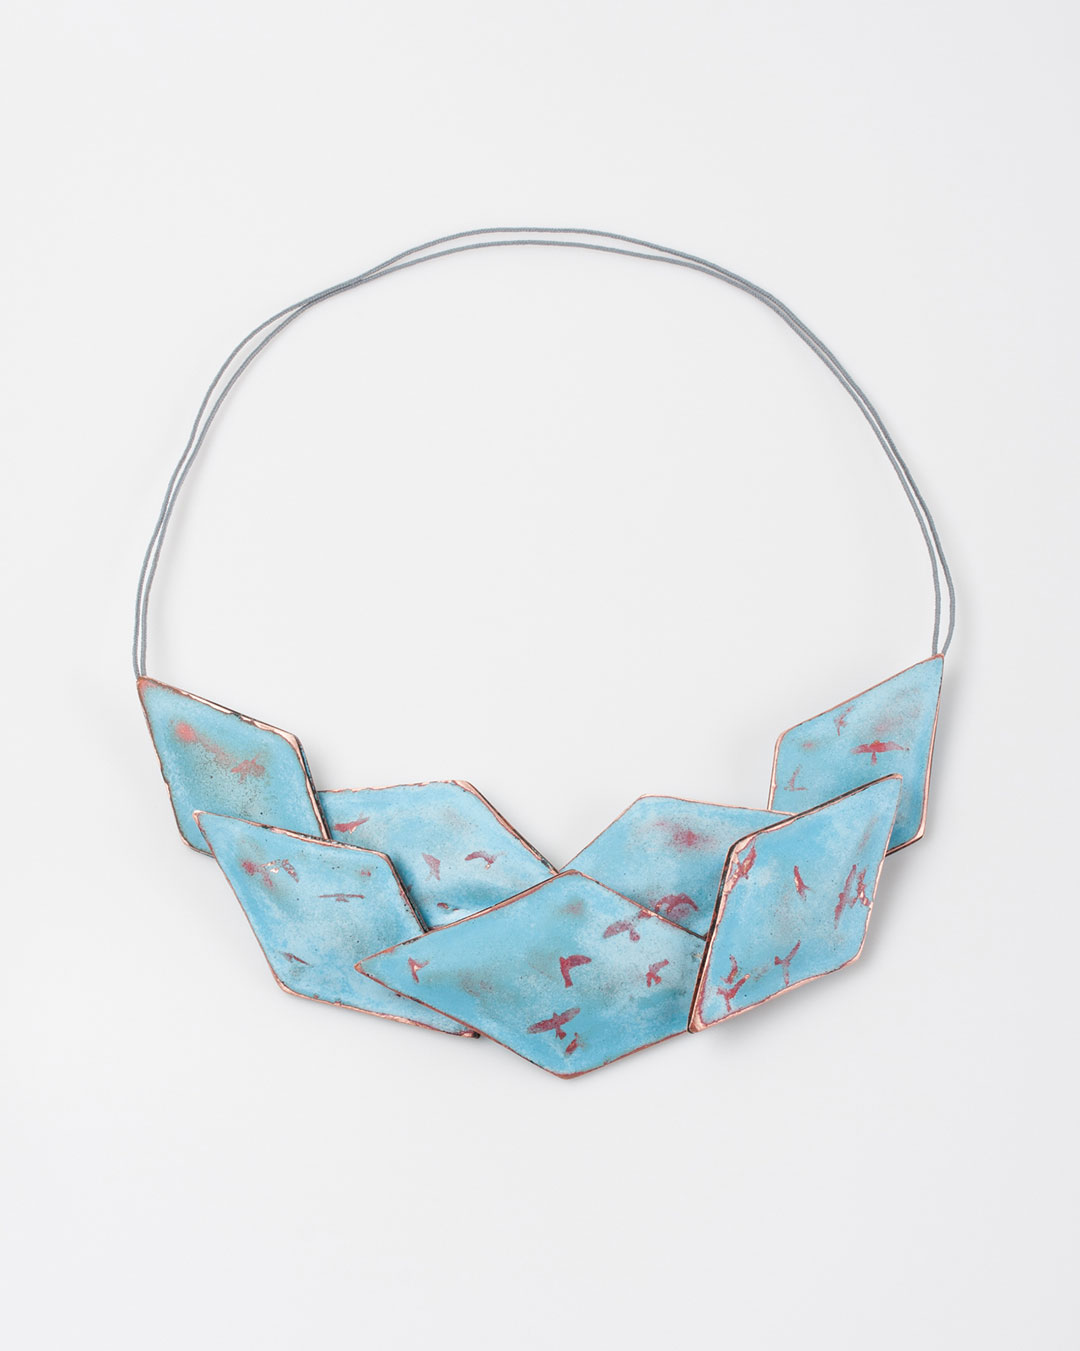 Nicole Beck, My Blue Sky, 2018, necklace; copper, enamel, silver, 200 x 65 x 25 mm, €1650